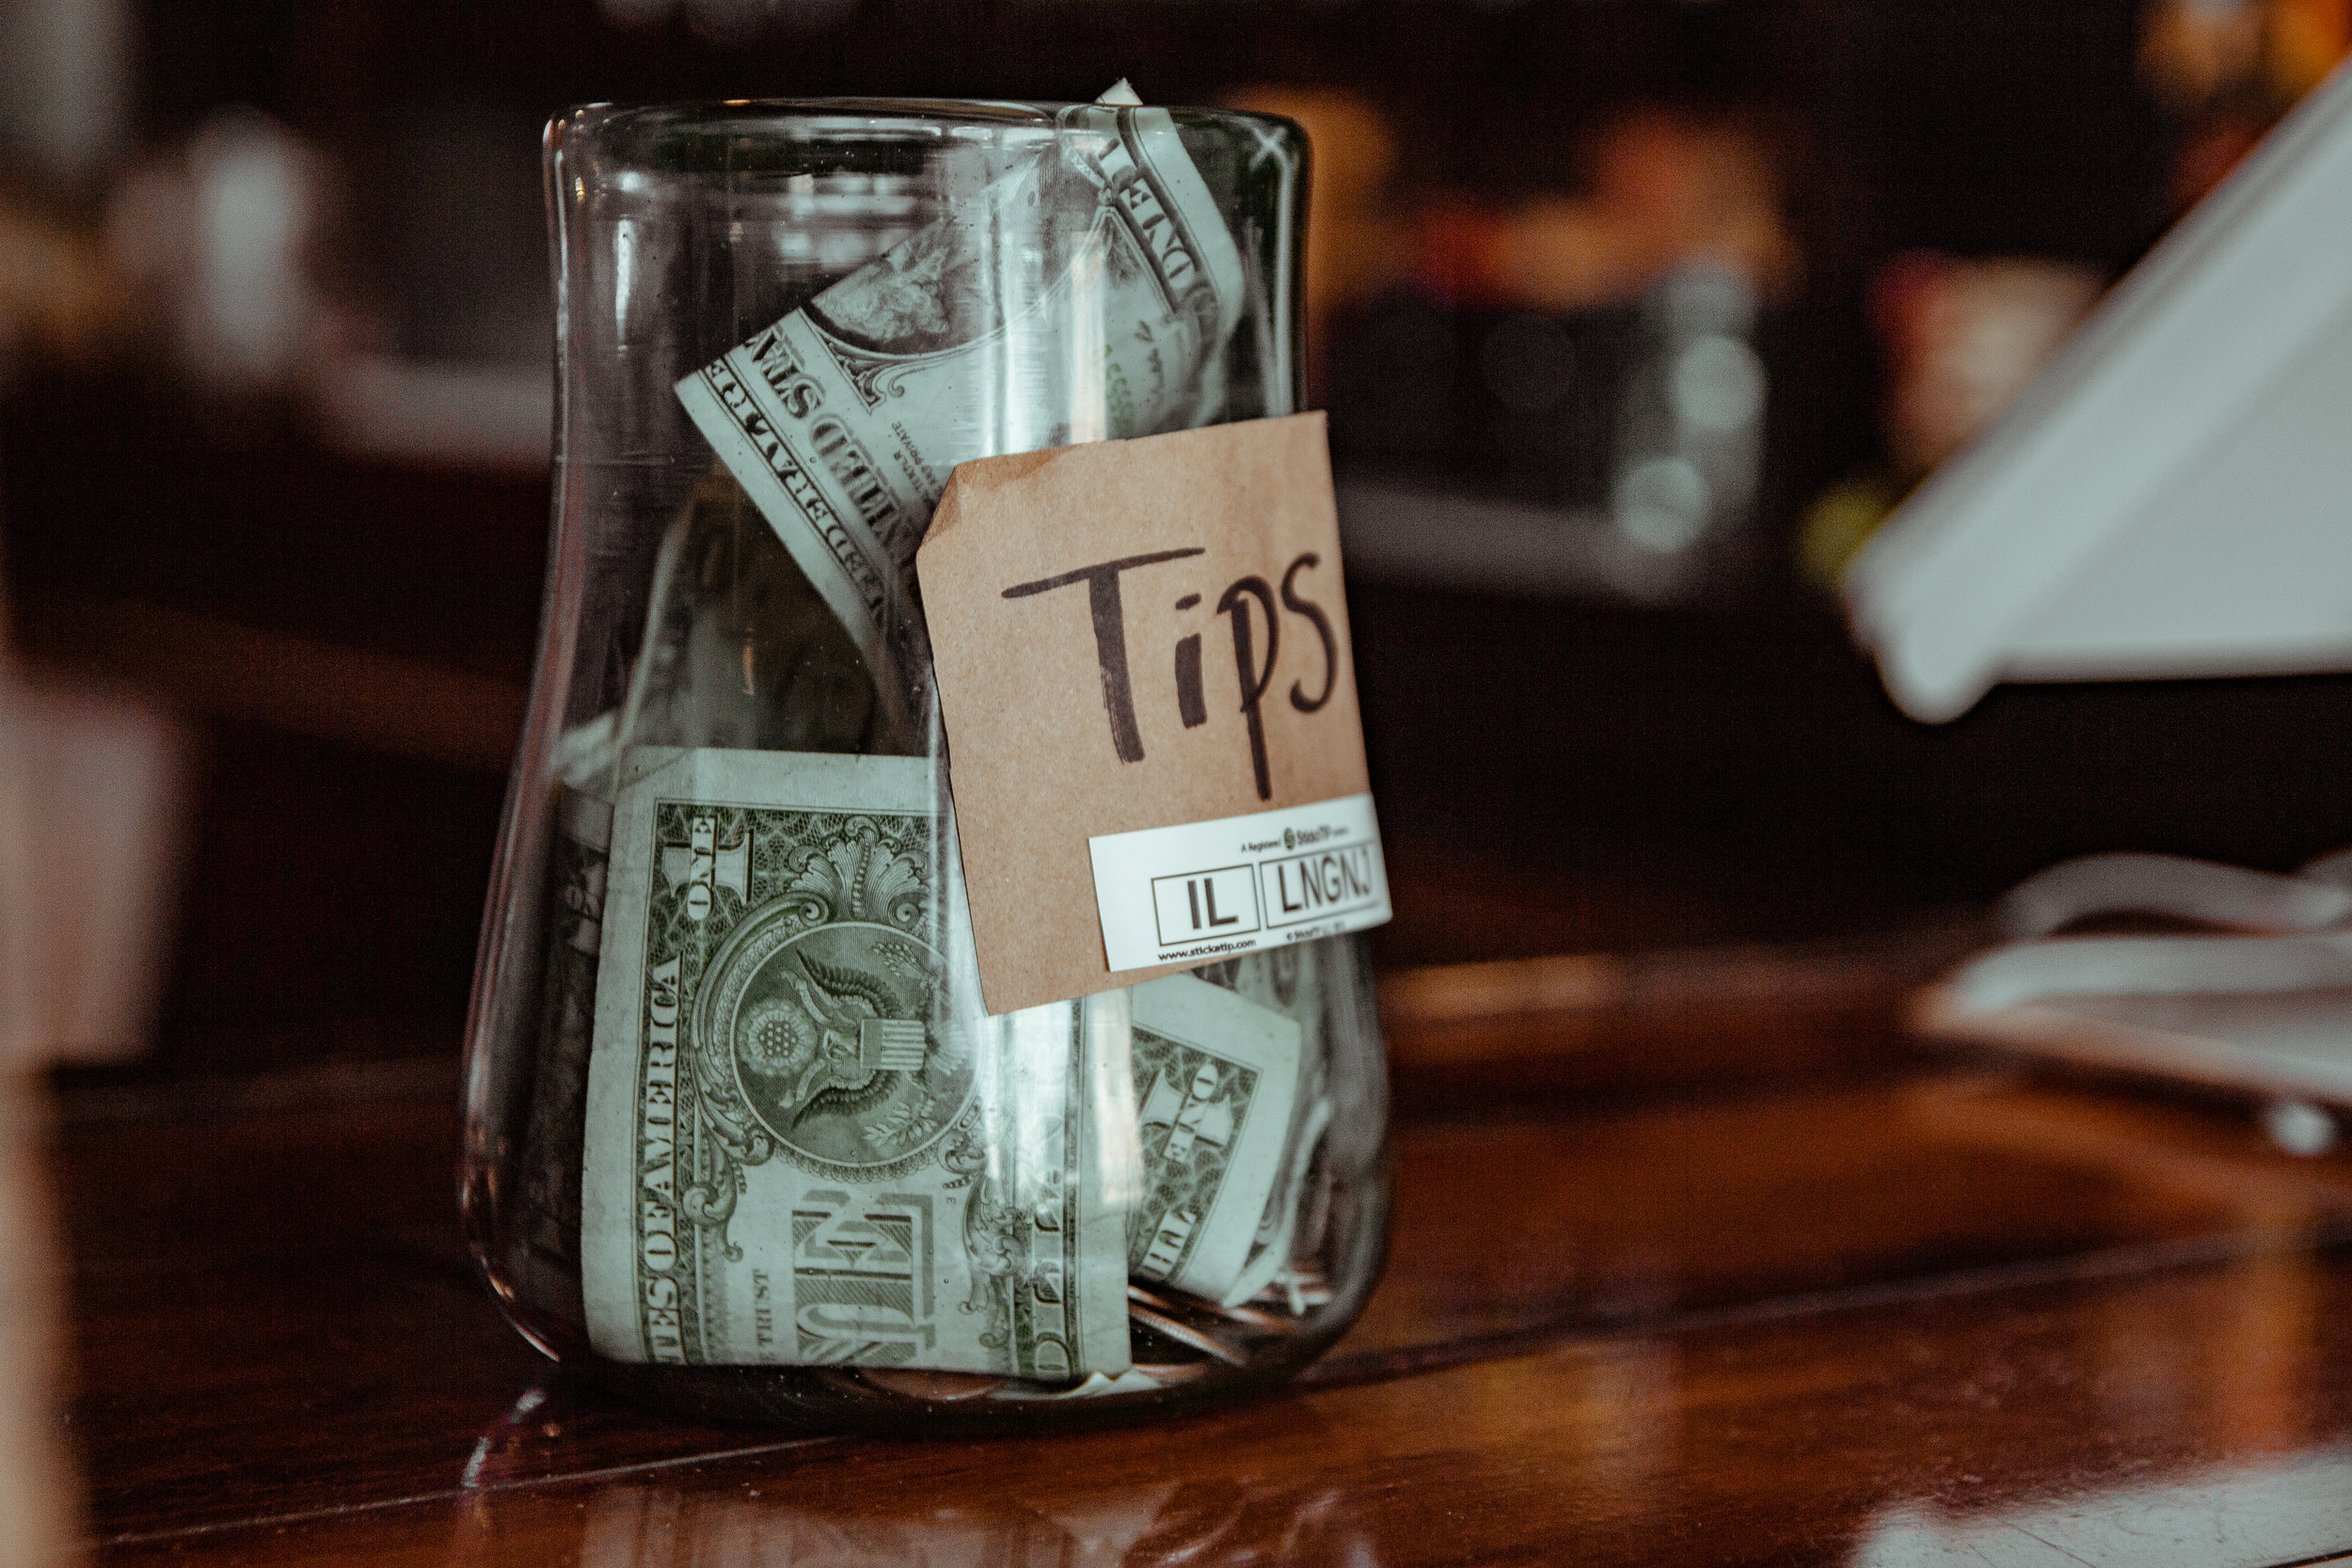 No Cash? Want to tip    - We've got you covered.StickaTIP is as easy as Download, Register and Start tipping.